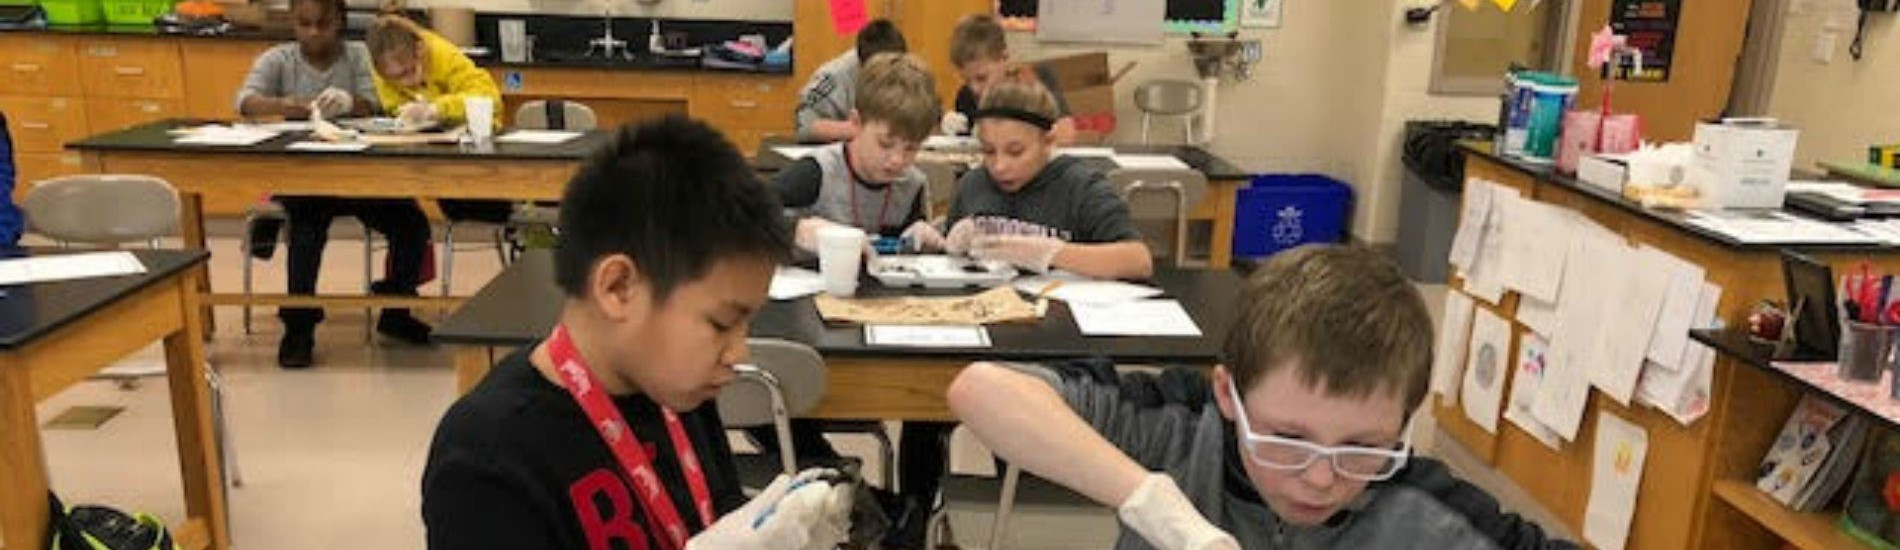 The 5th graders learn to dissect in science class!